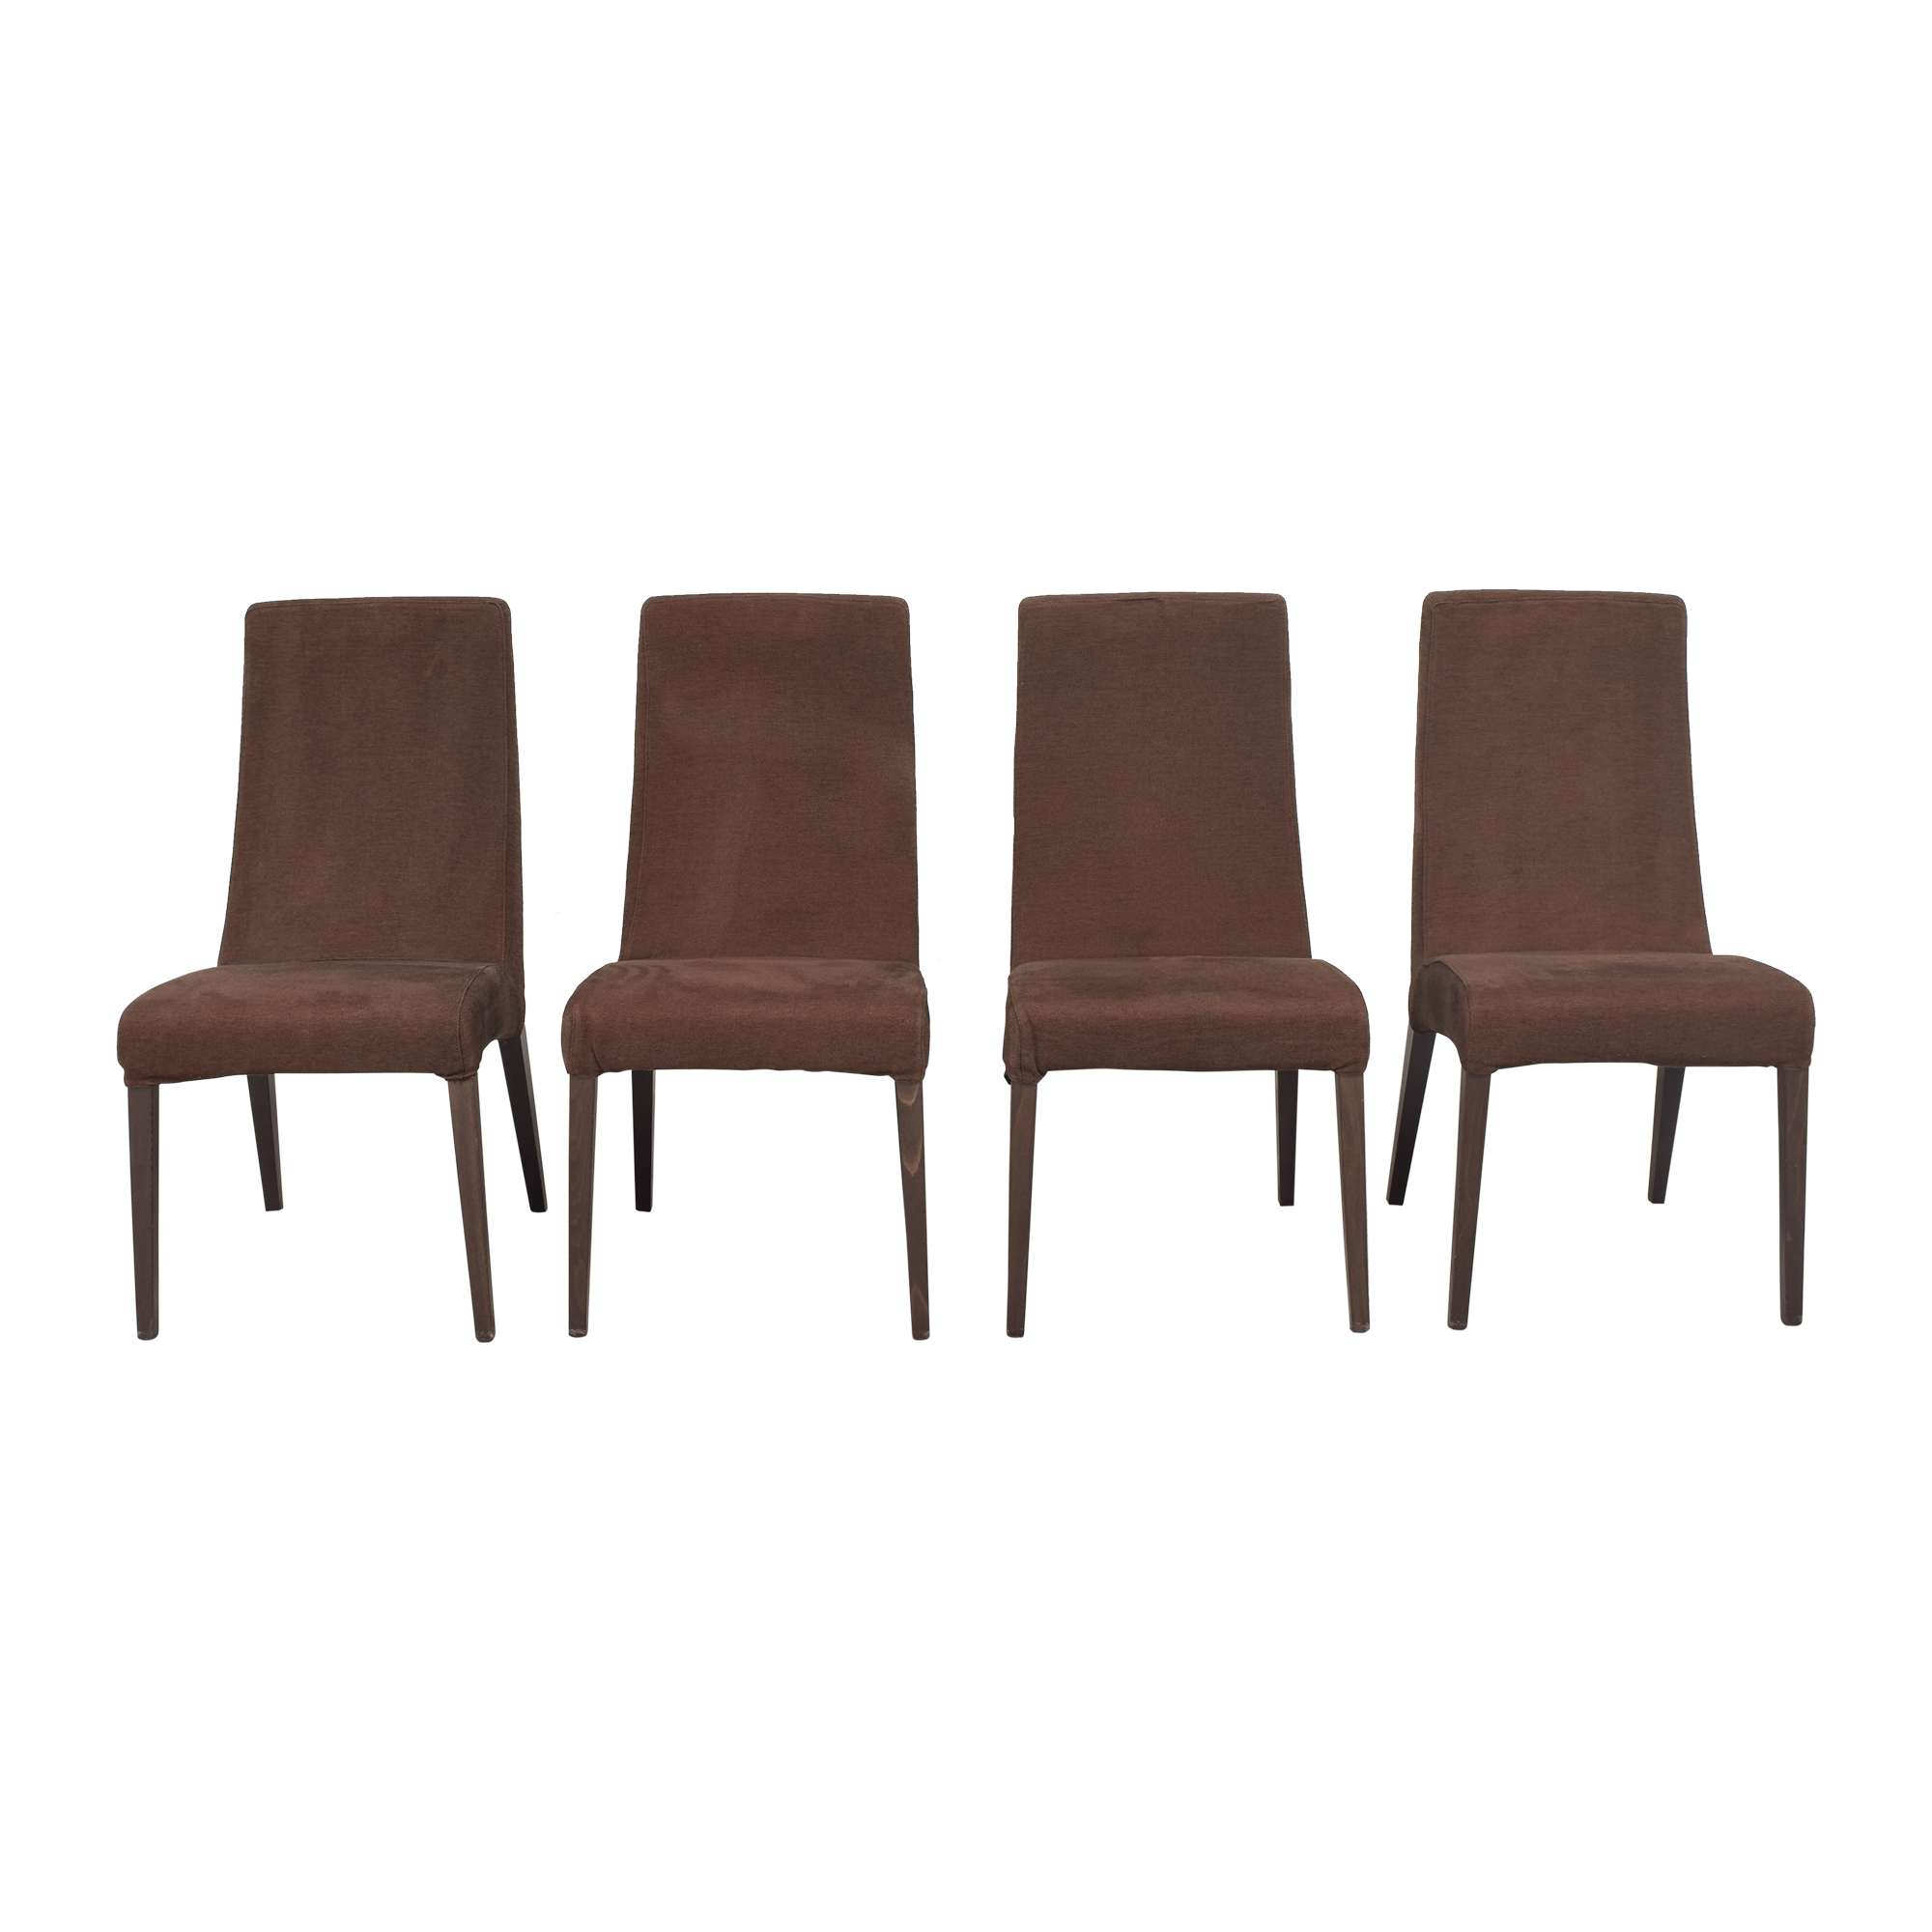 buy Calligaris Upholstered Dining Chairs Calligaris Chairs